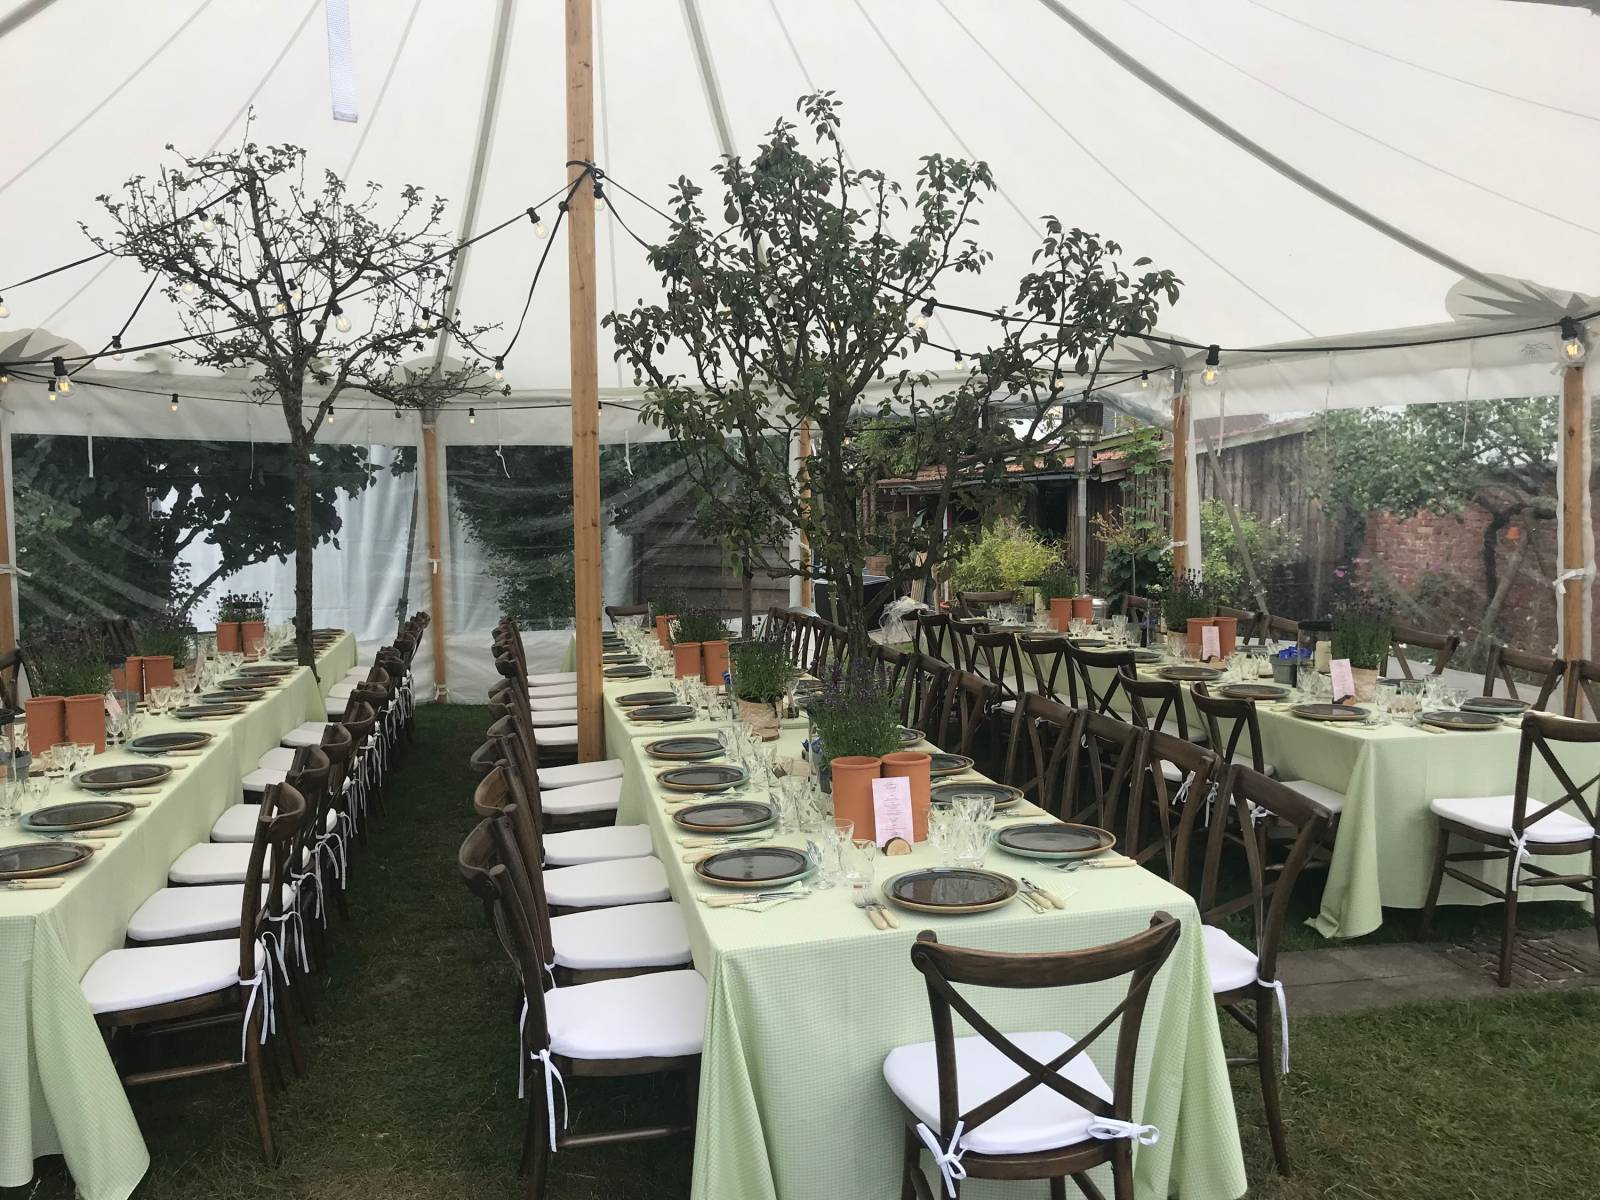 Hendrickx feesten - Catering - Traiteur - Cateraar - House of Weddings - 26